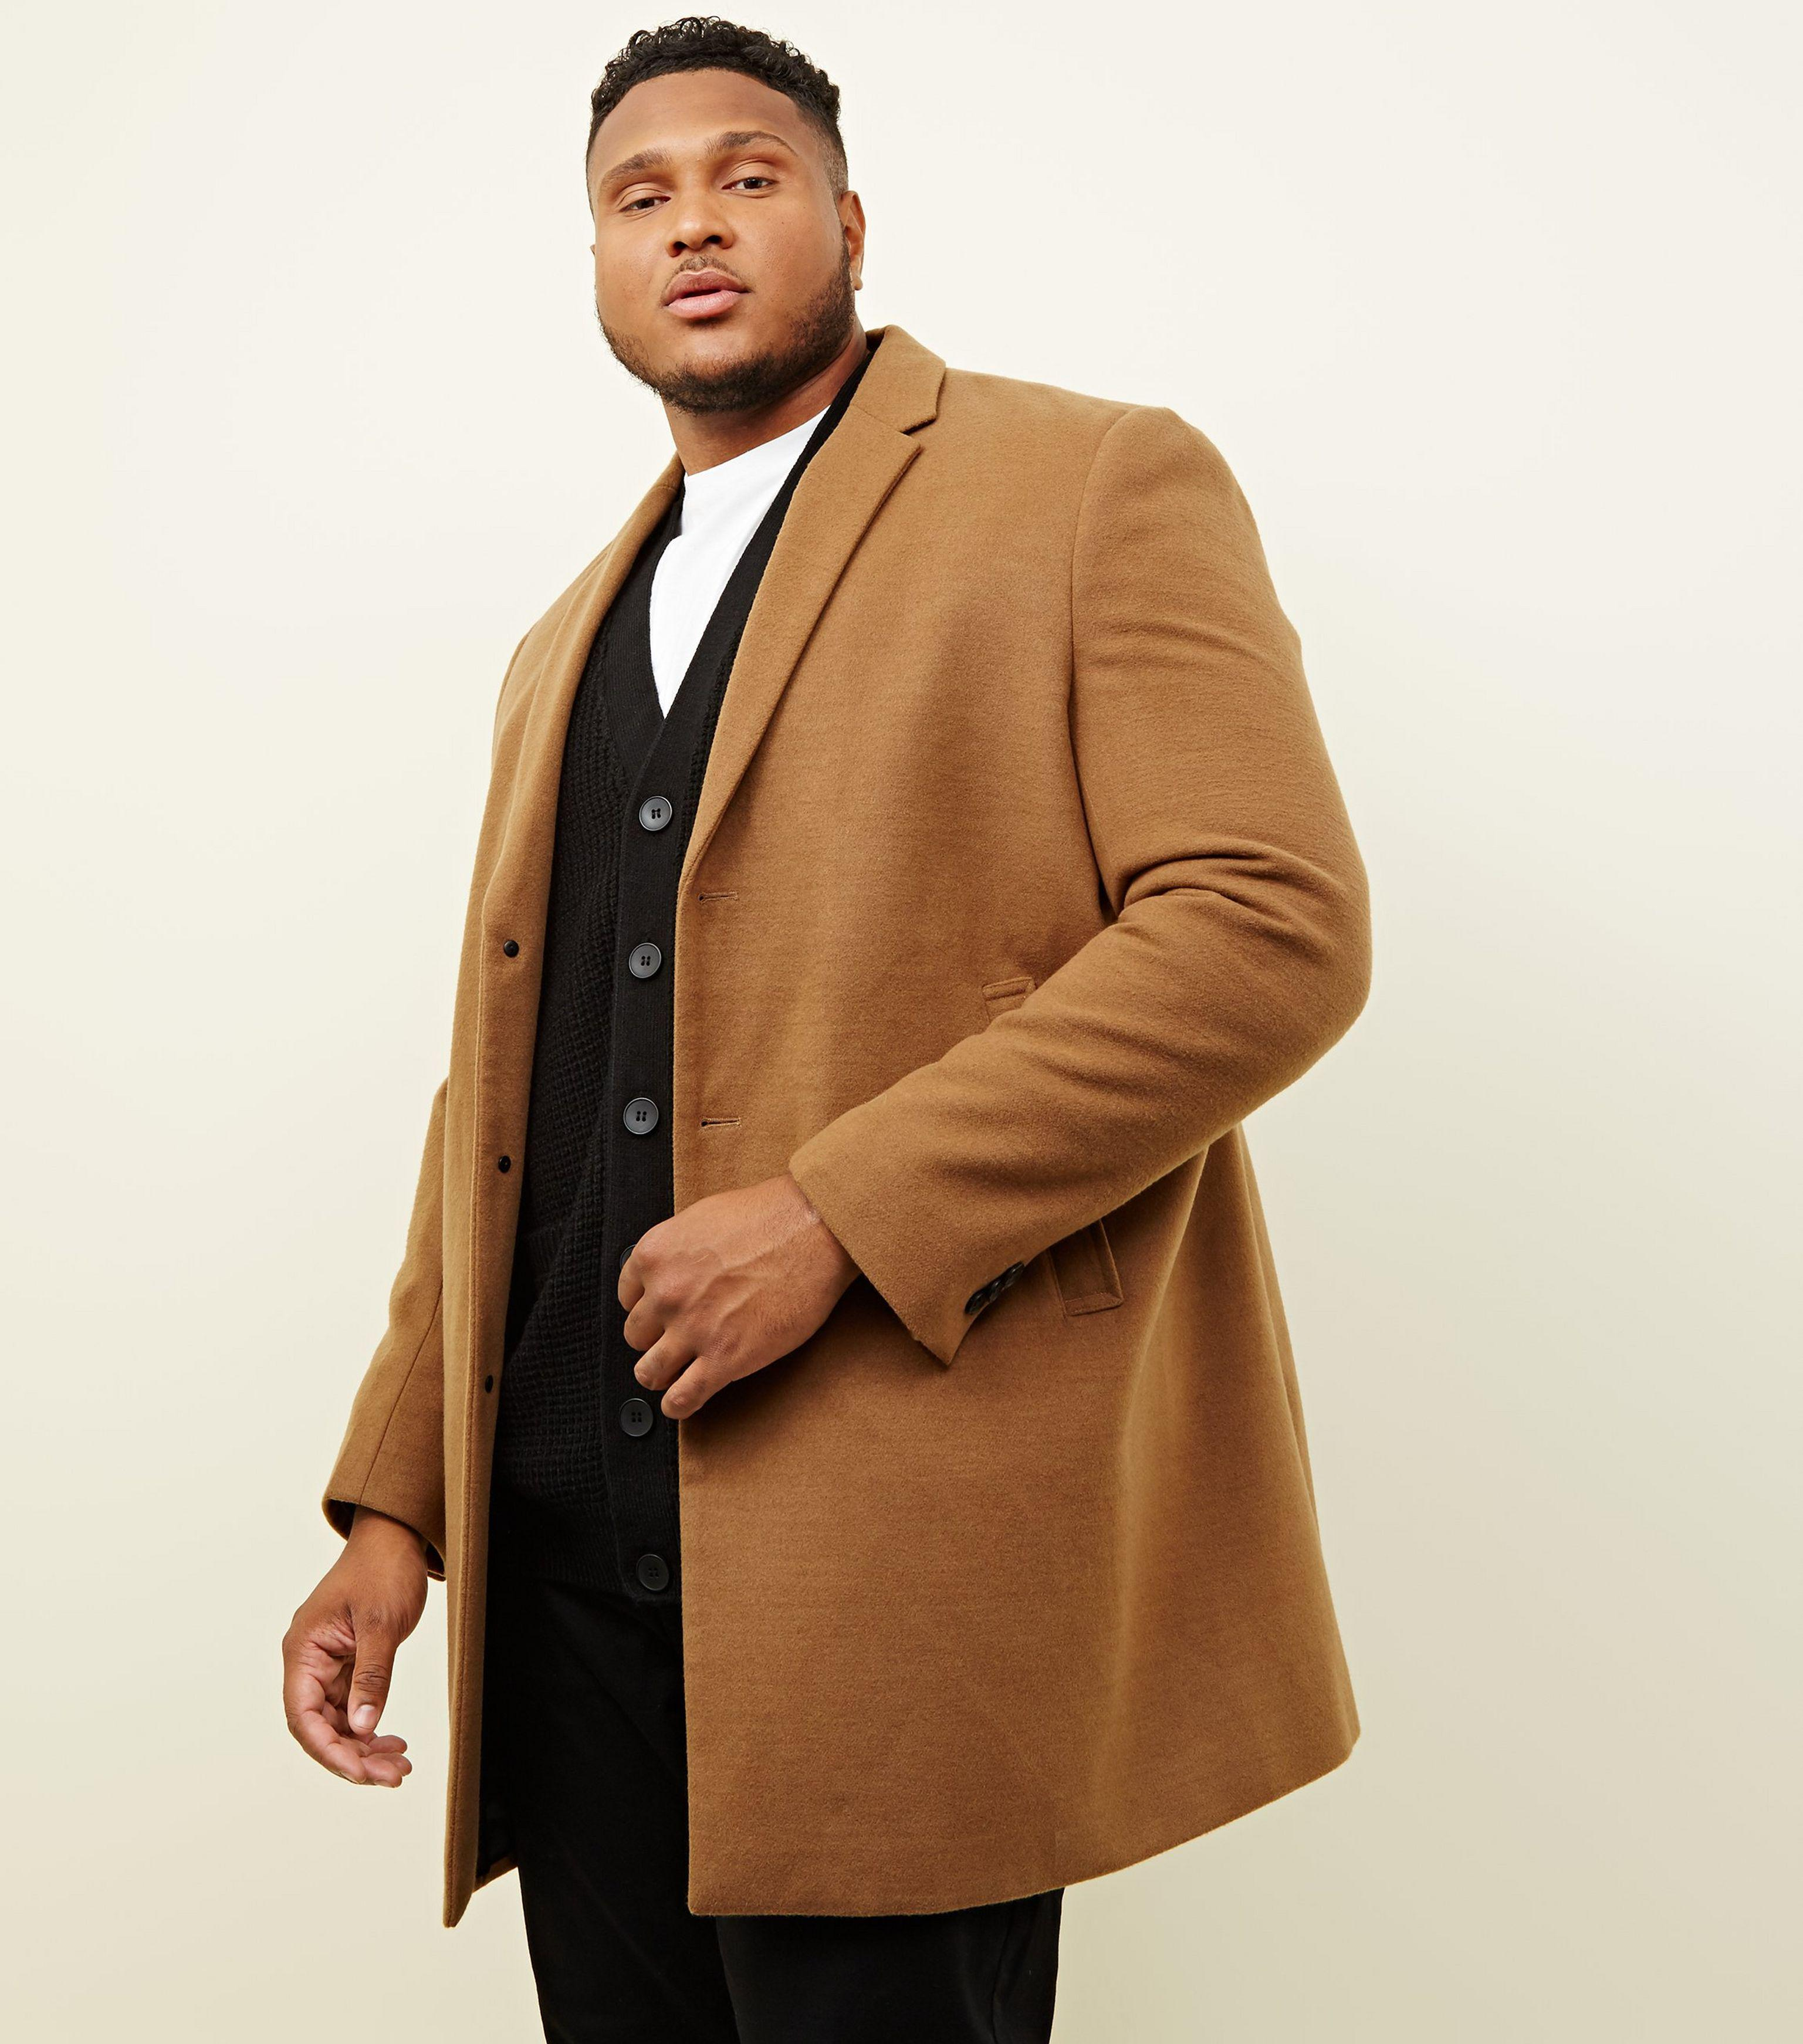 c575c2b8d29 New Look Plus Size Camel Overcoat in Natural for Men - Lyst